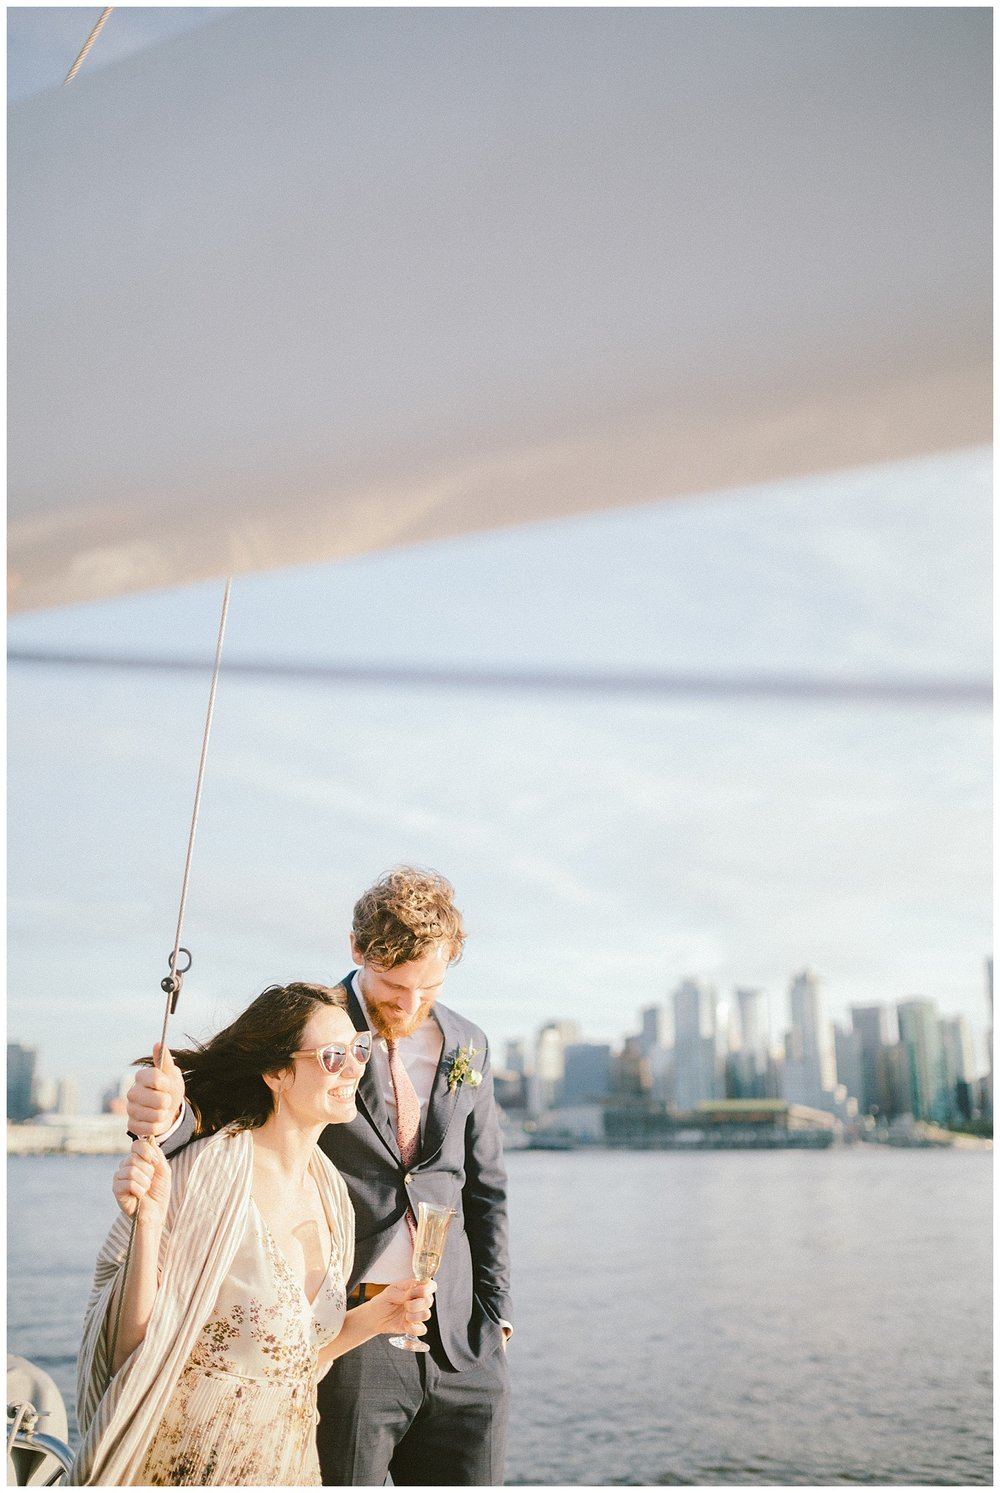 Hong Kong Vancouver fine art prewedding wedding photography photographer Mattie C.00041.jpg